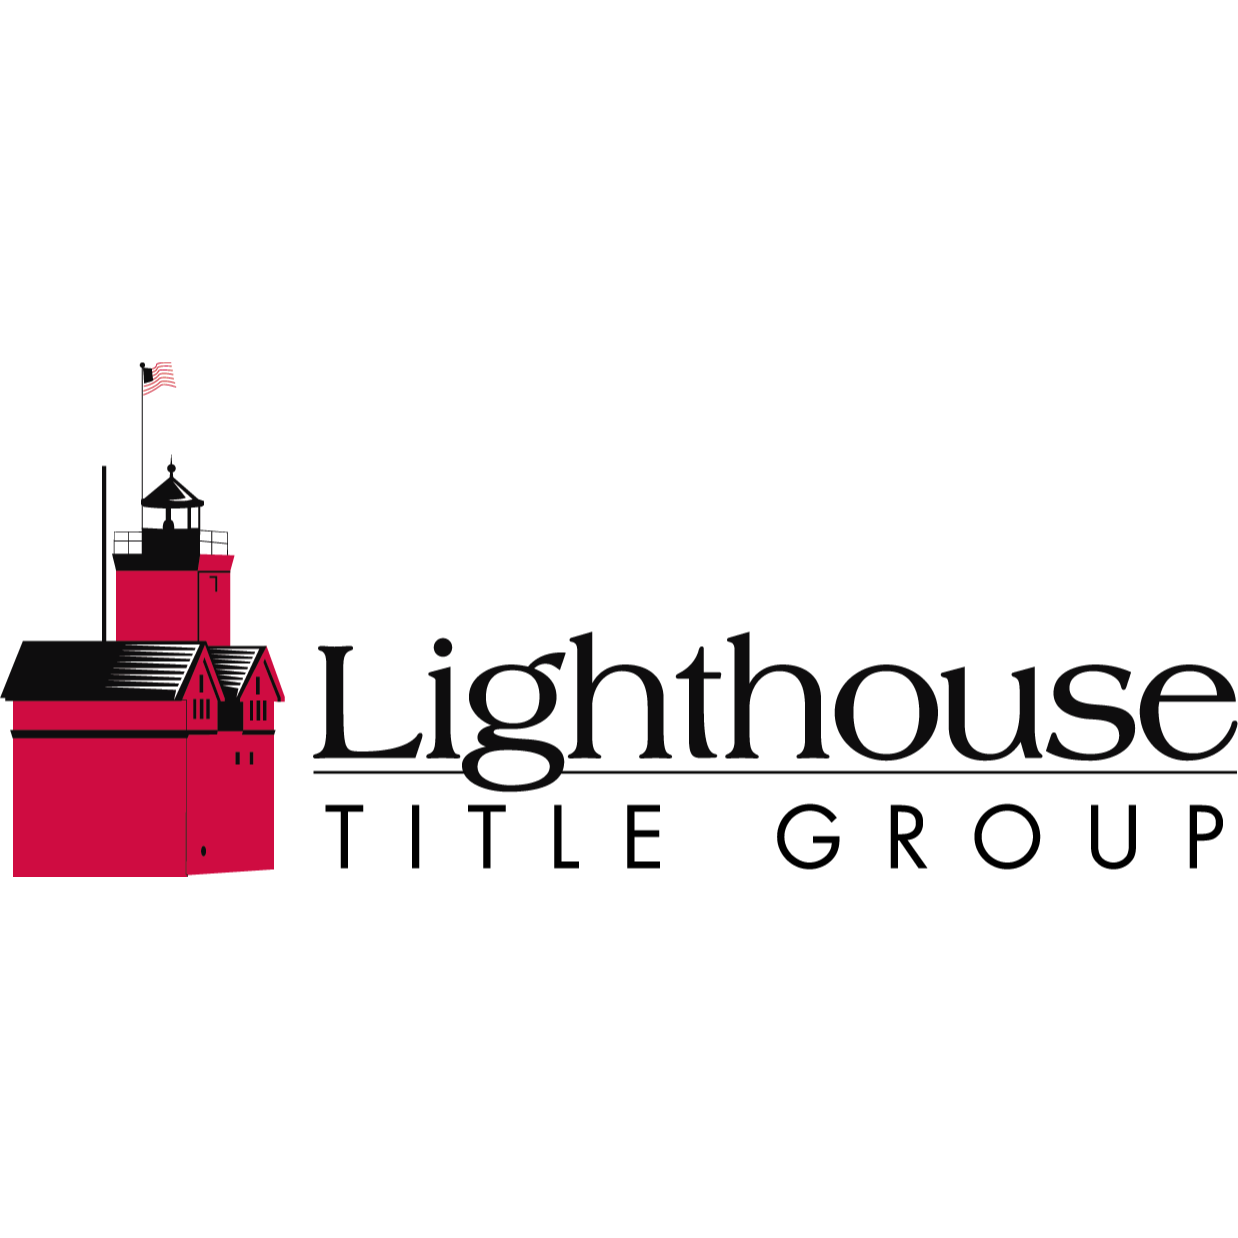 Lighthouse Title Group - Menominee Abstract